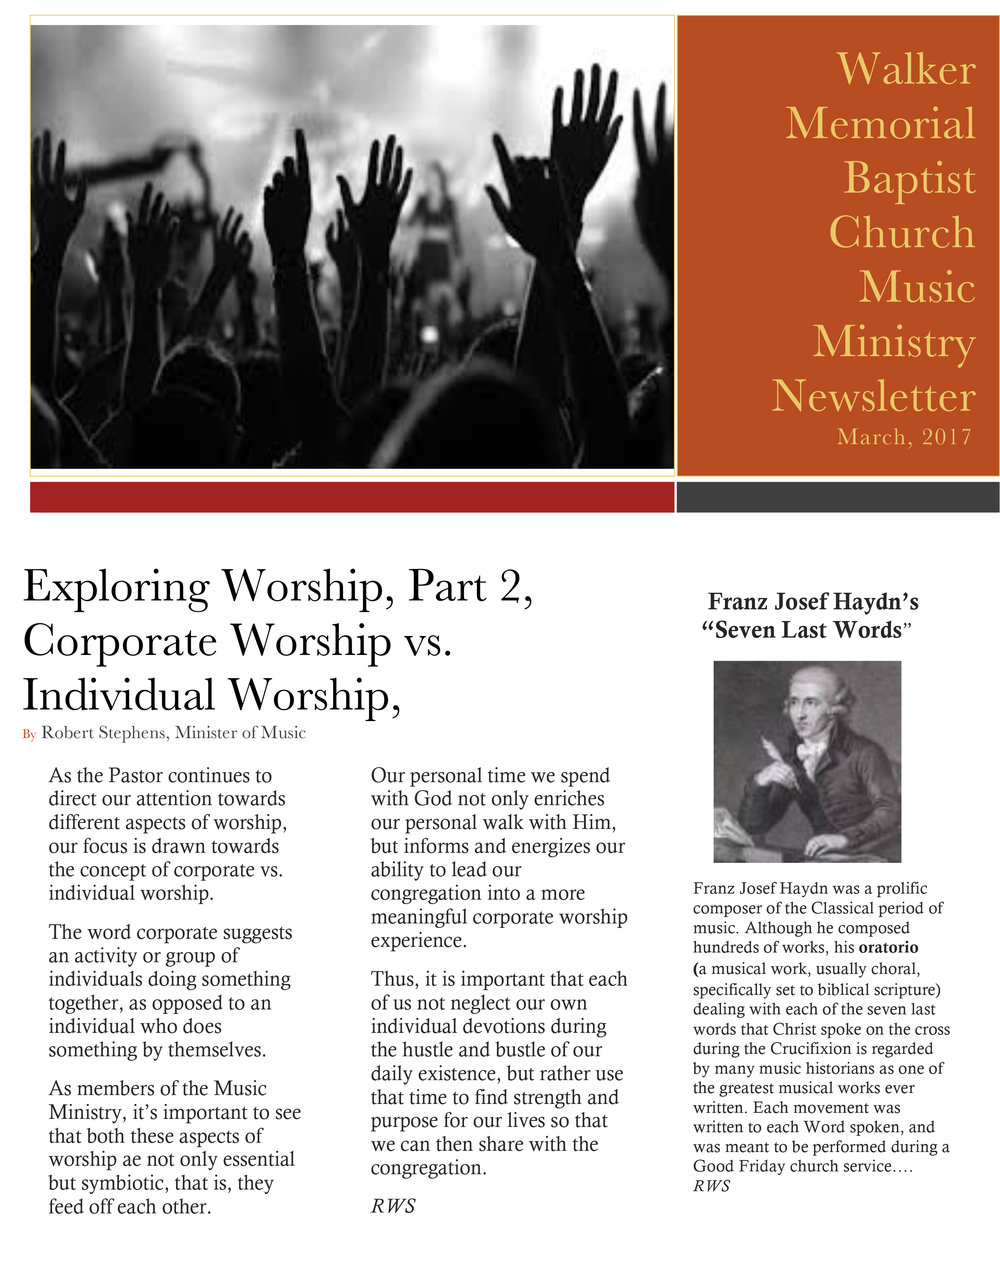 WMBC Music Ministry Newsletter March 2017 -1.jpg